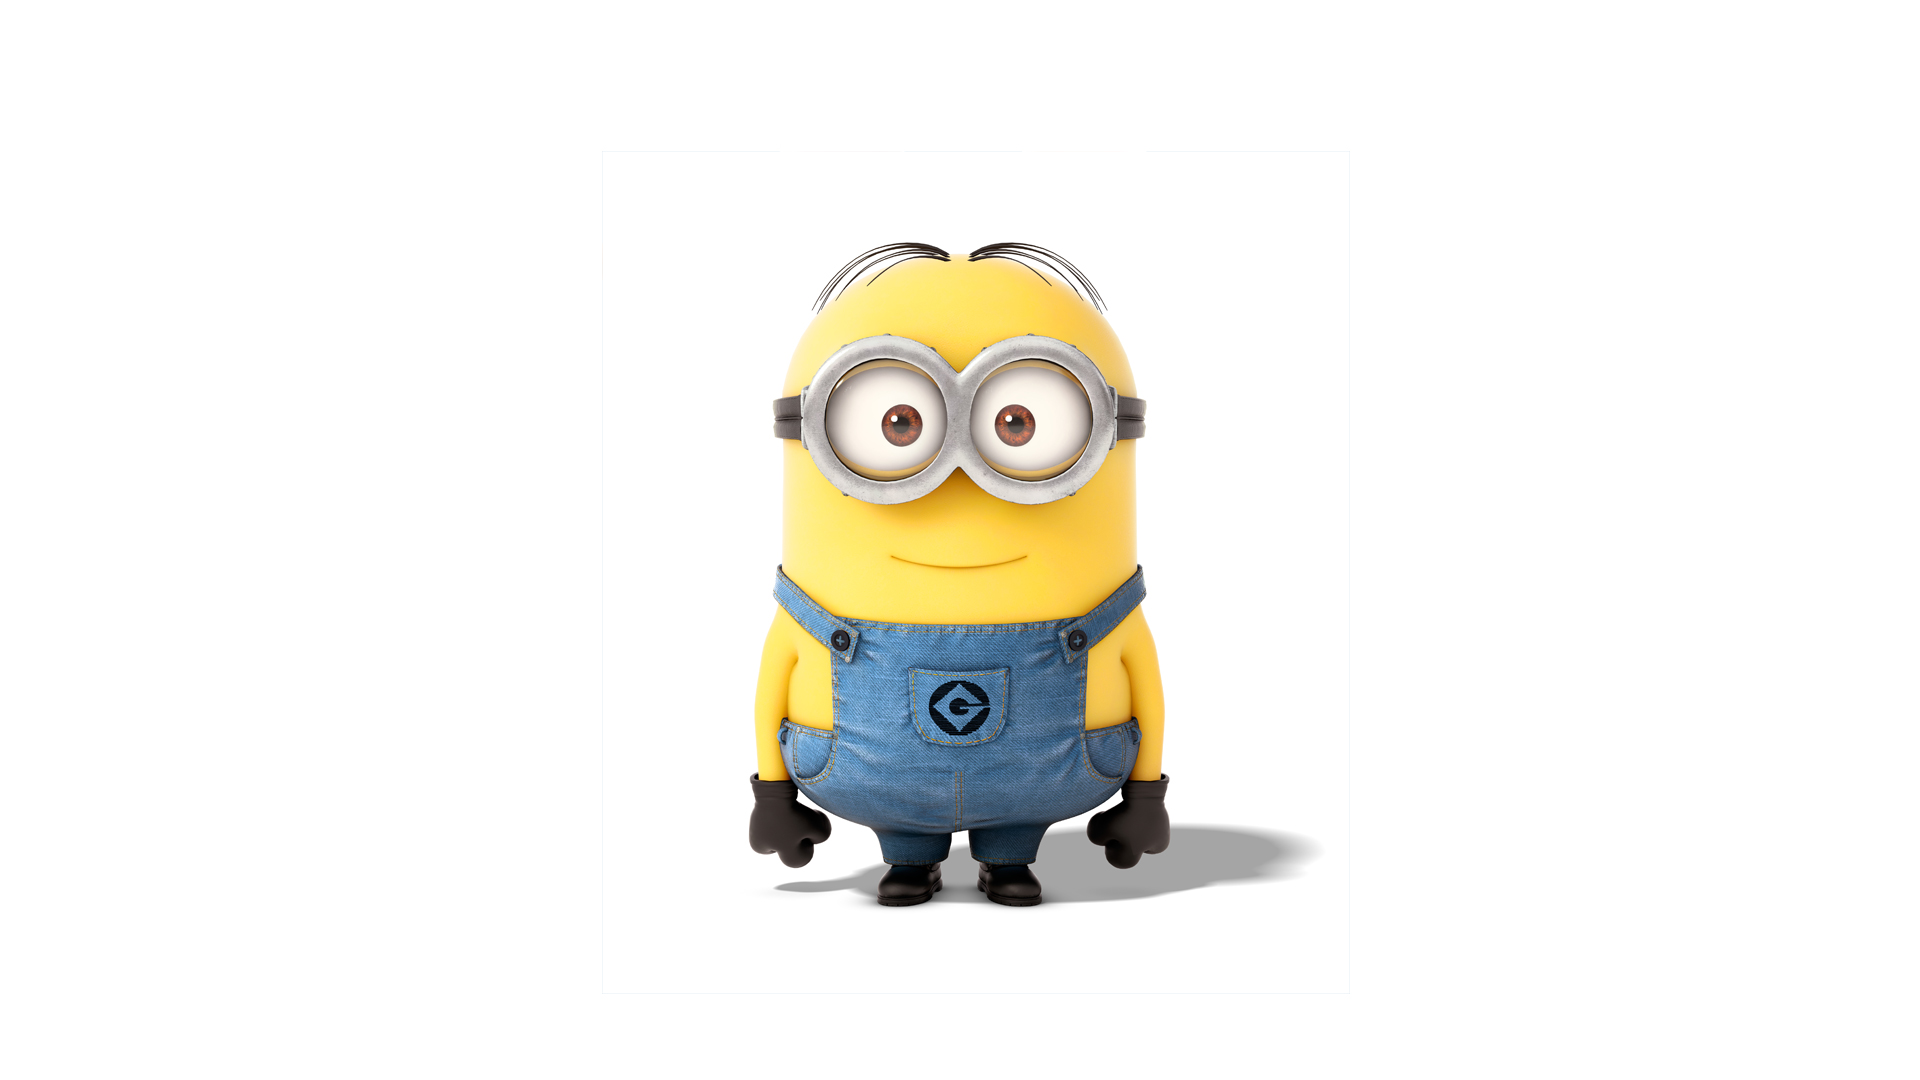 Cool Minions HD Wallpaper 17 For Desktop Background wallalliescom 1920x1080